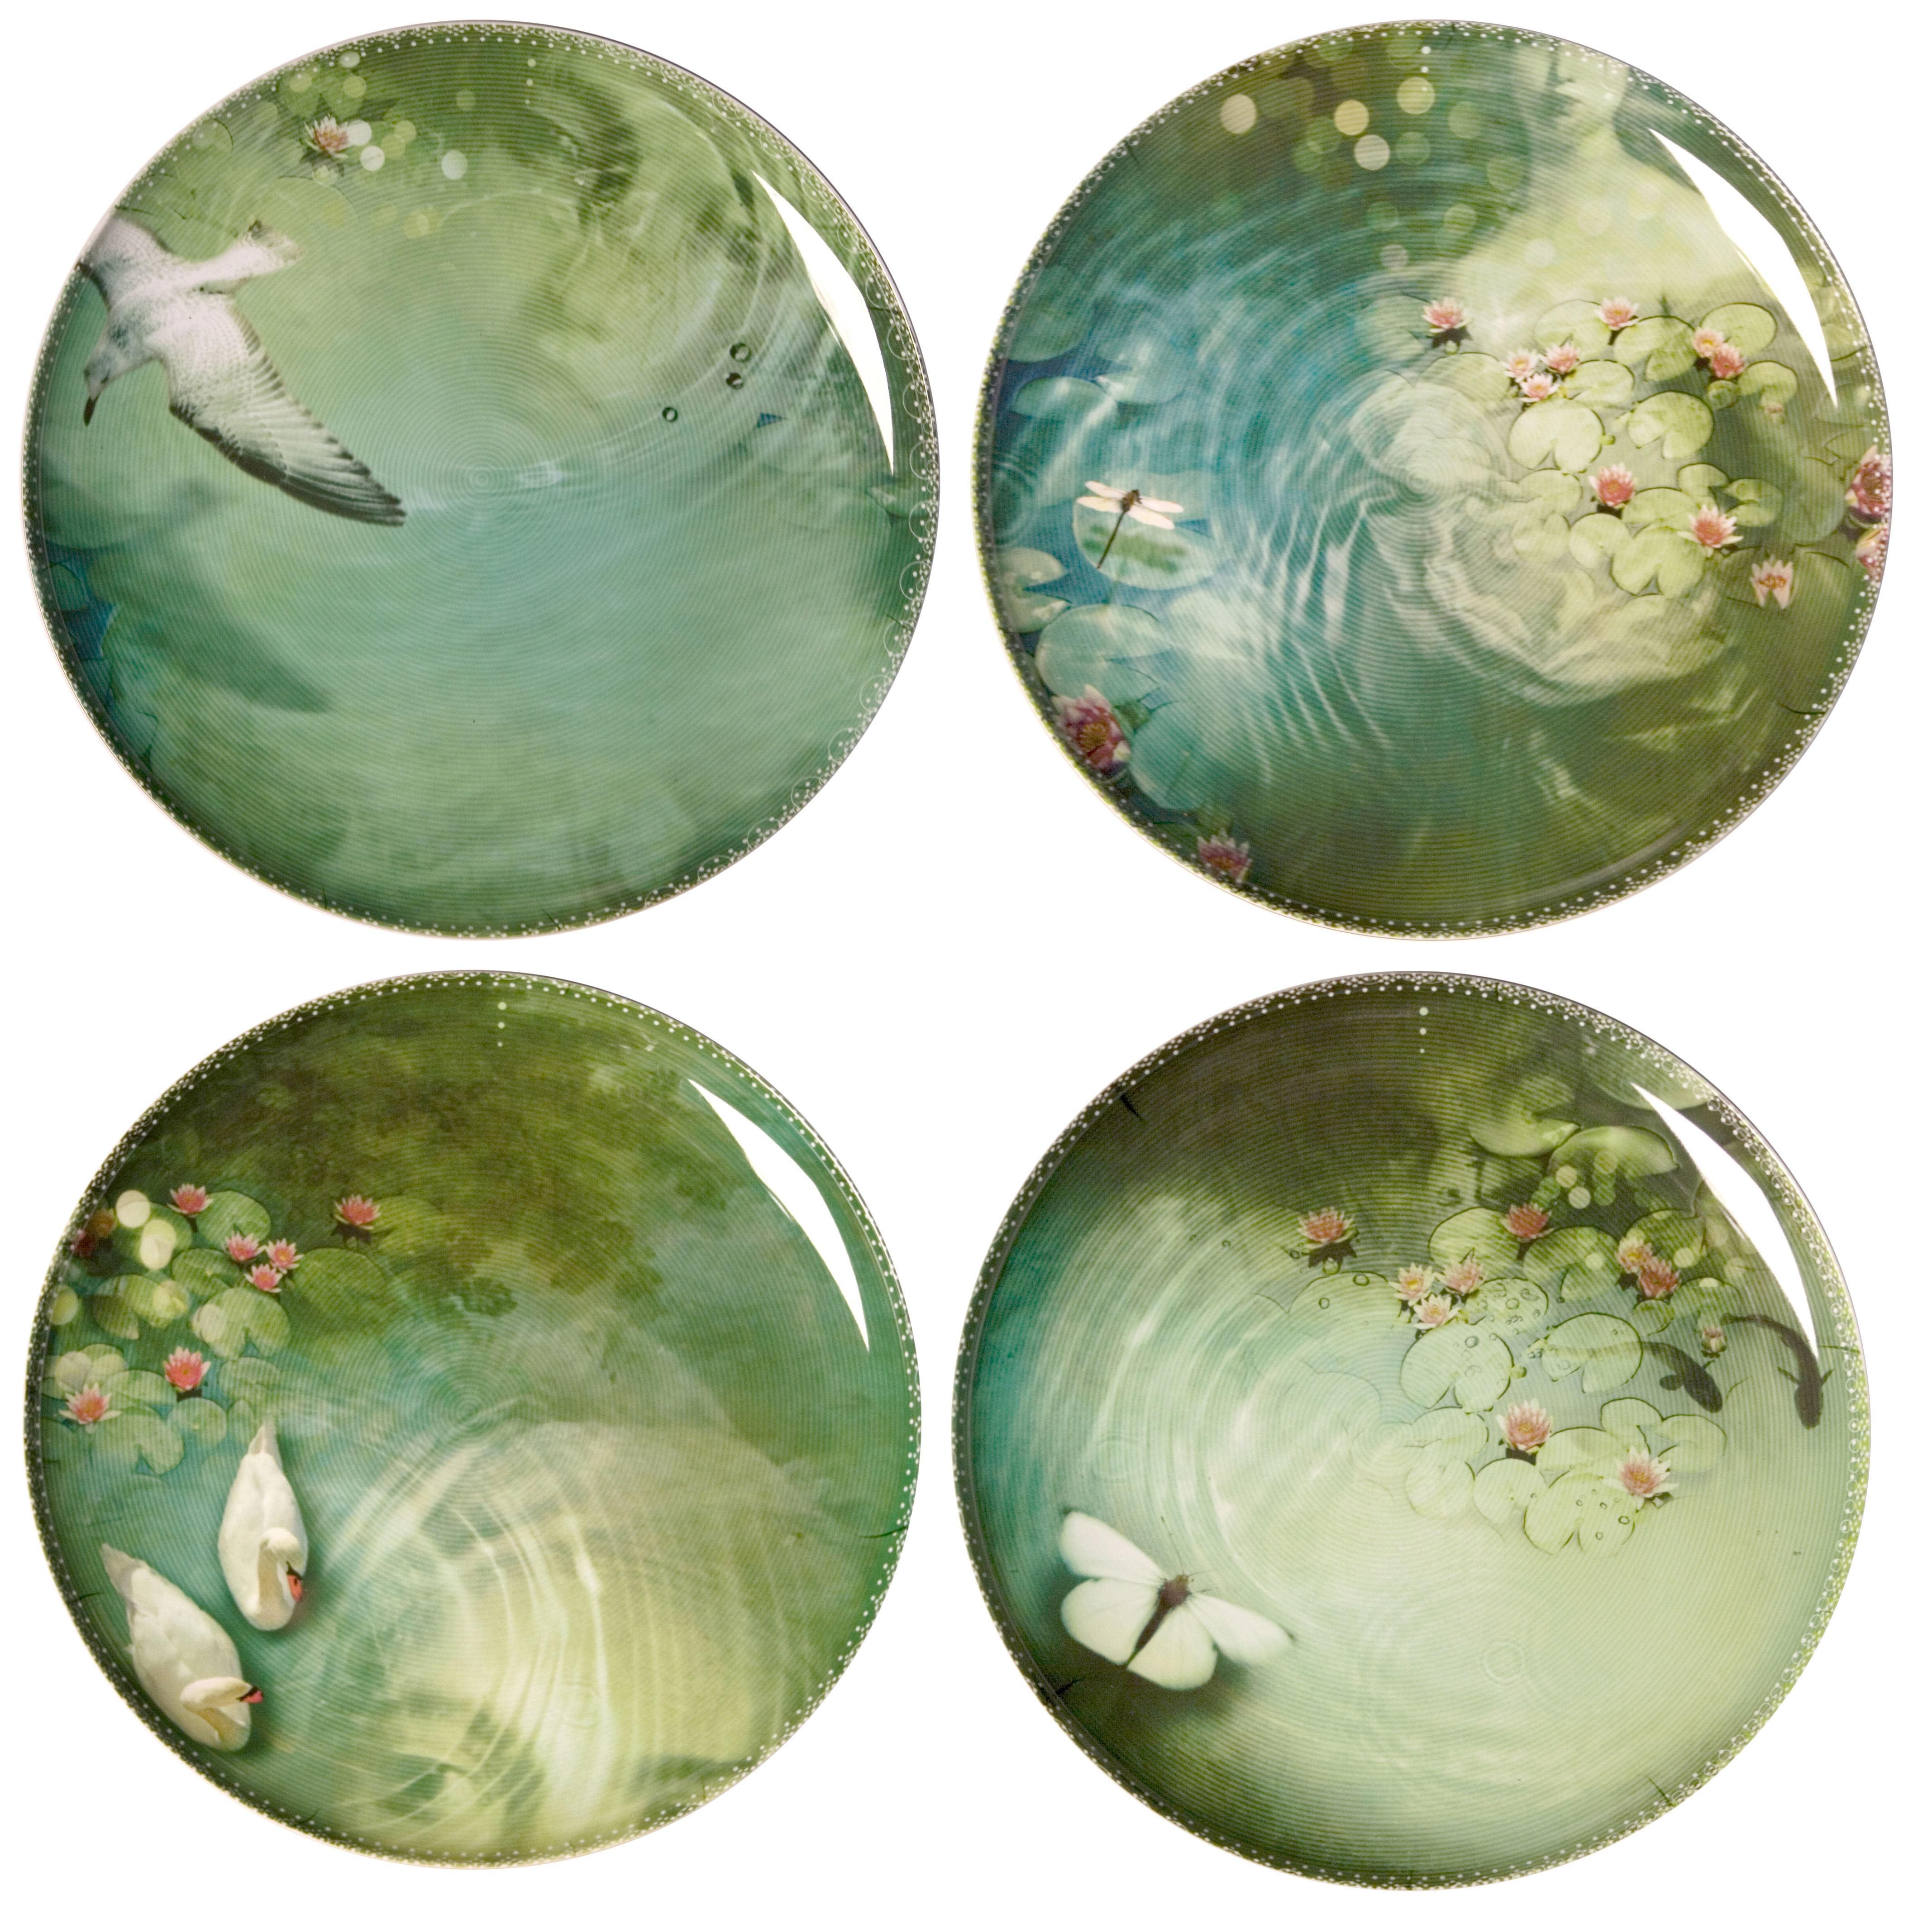 Tableware - Plates - Yuan Plate - / Set of 4 by Ibride - Black / Green patterns (Yuan) - Melamine